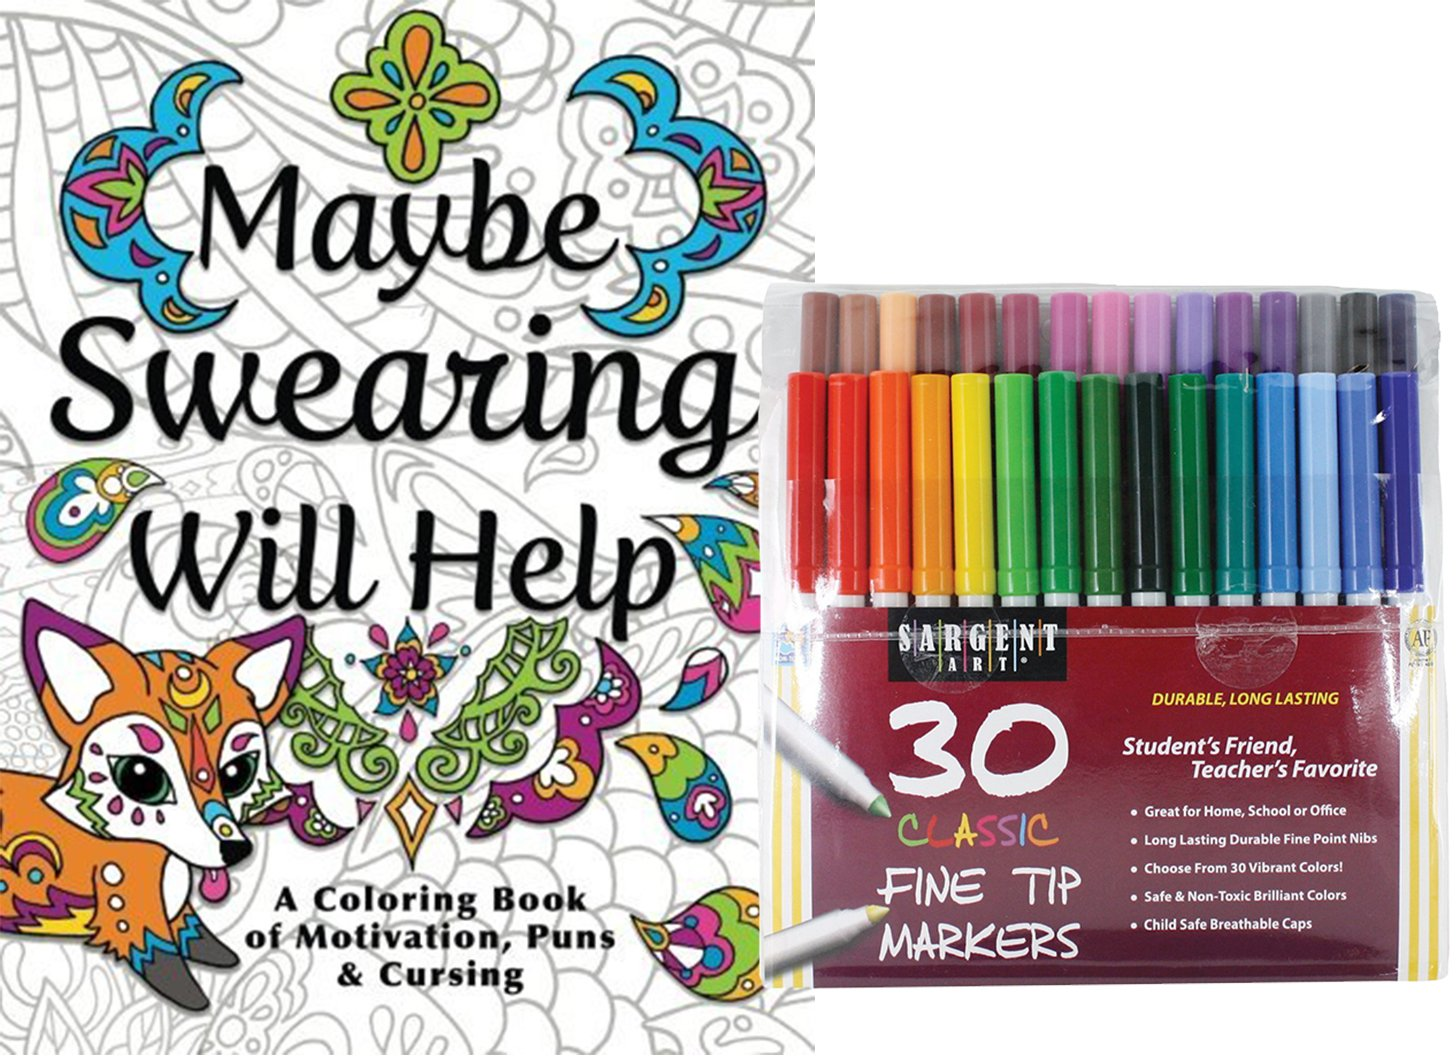 Sargent Art Classic Fine Tip Marker Pens in a Case, Set of 30 and Maybe Swearing Will Help: An Adult Coloring Book of Motivation, Puns & Cursing, Color and Laugh Your Way to Less Stress! by NYX